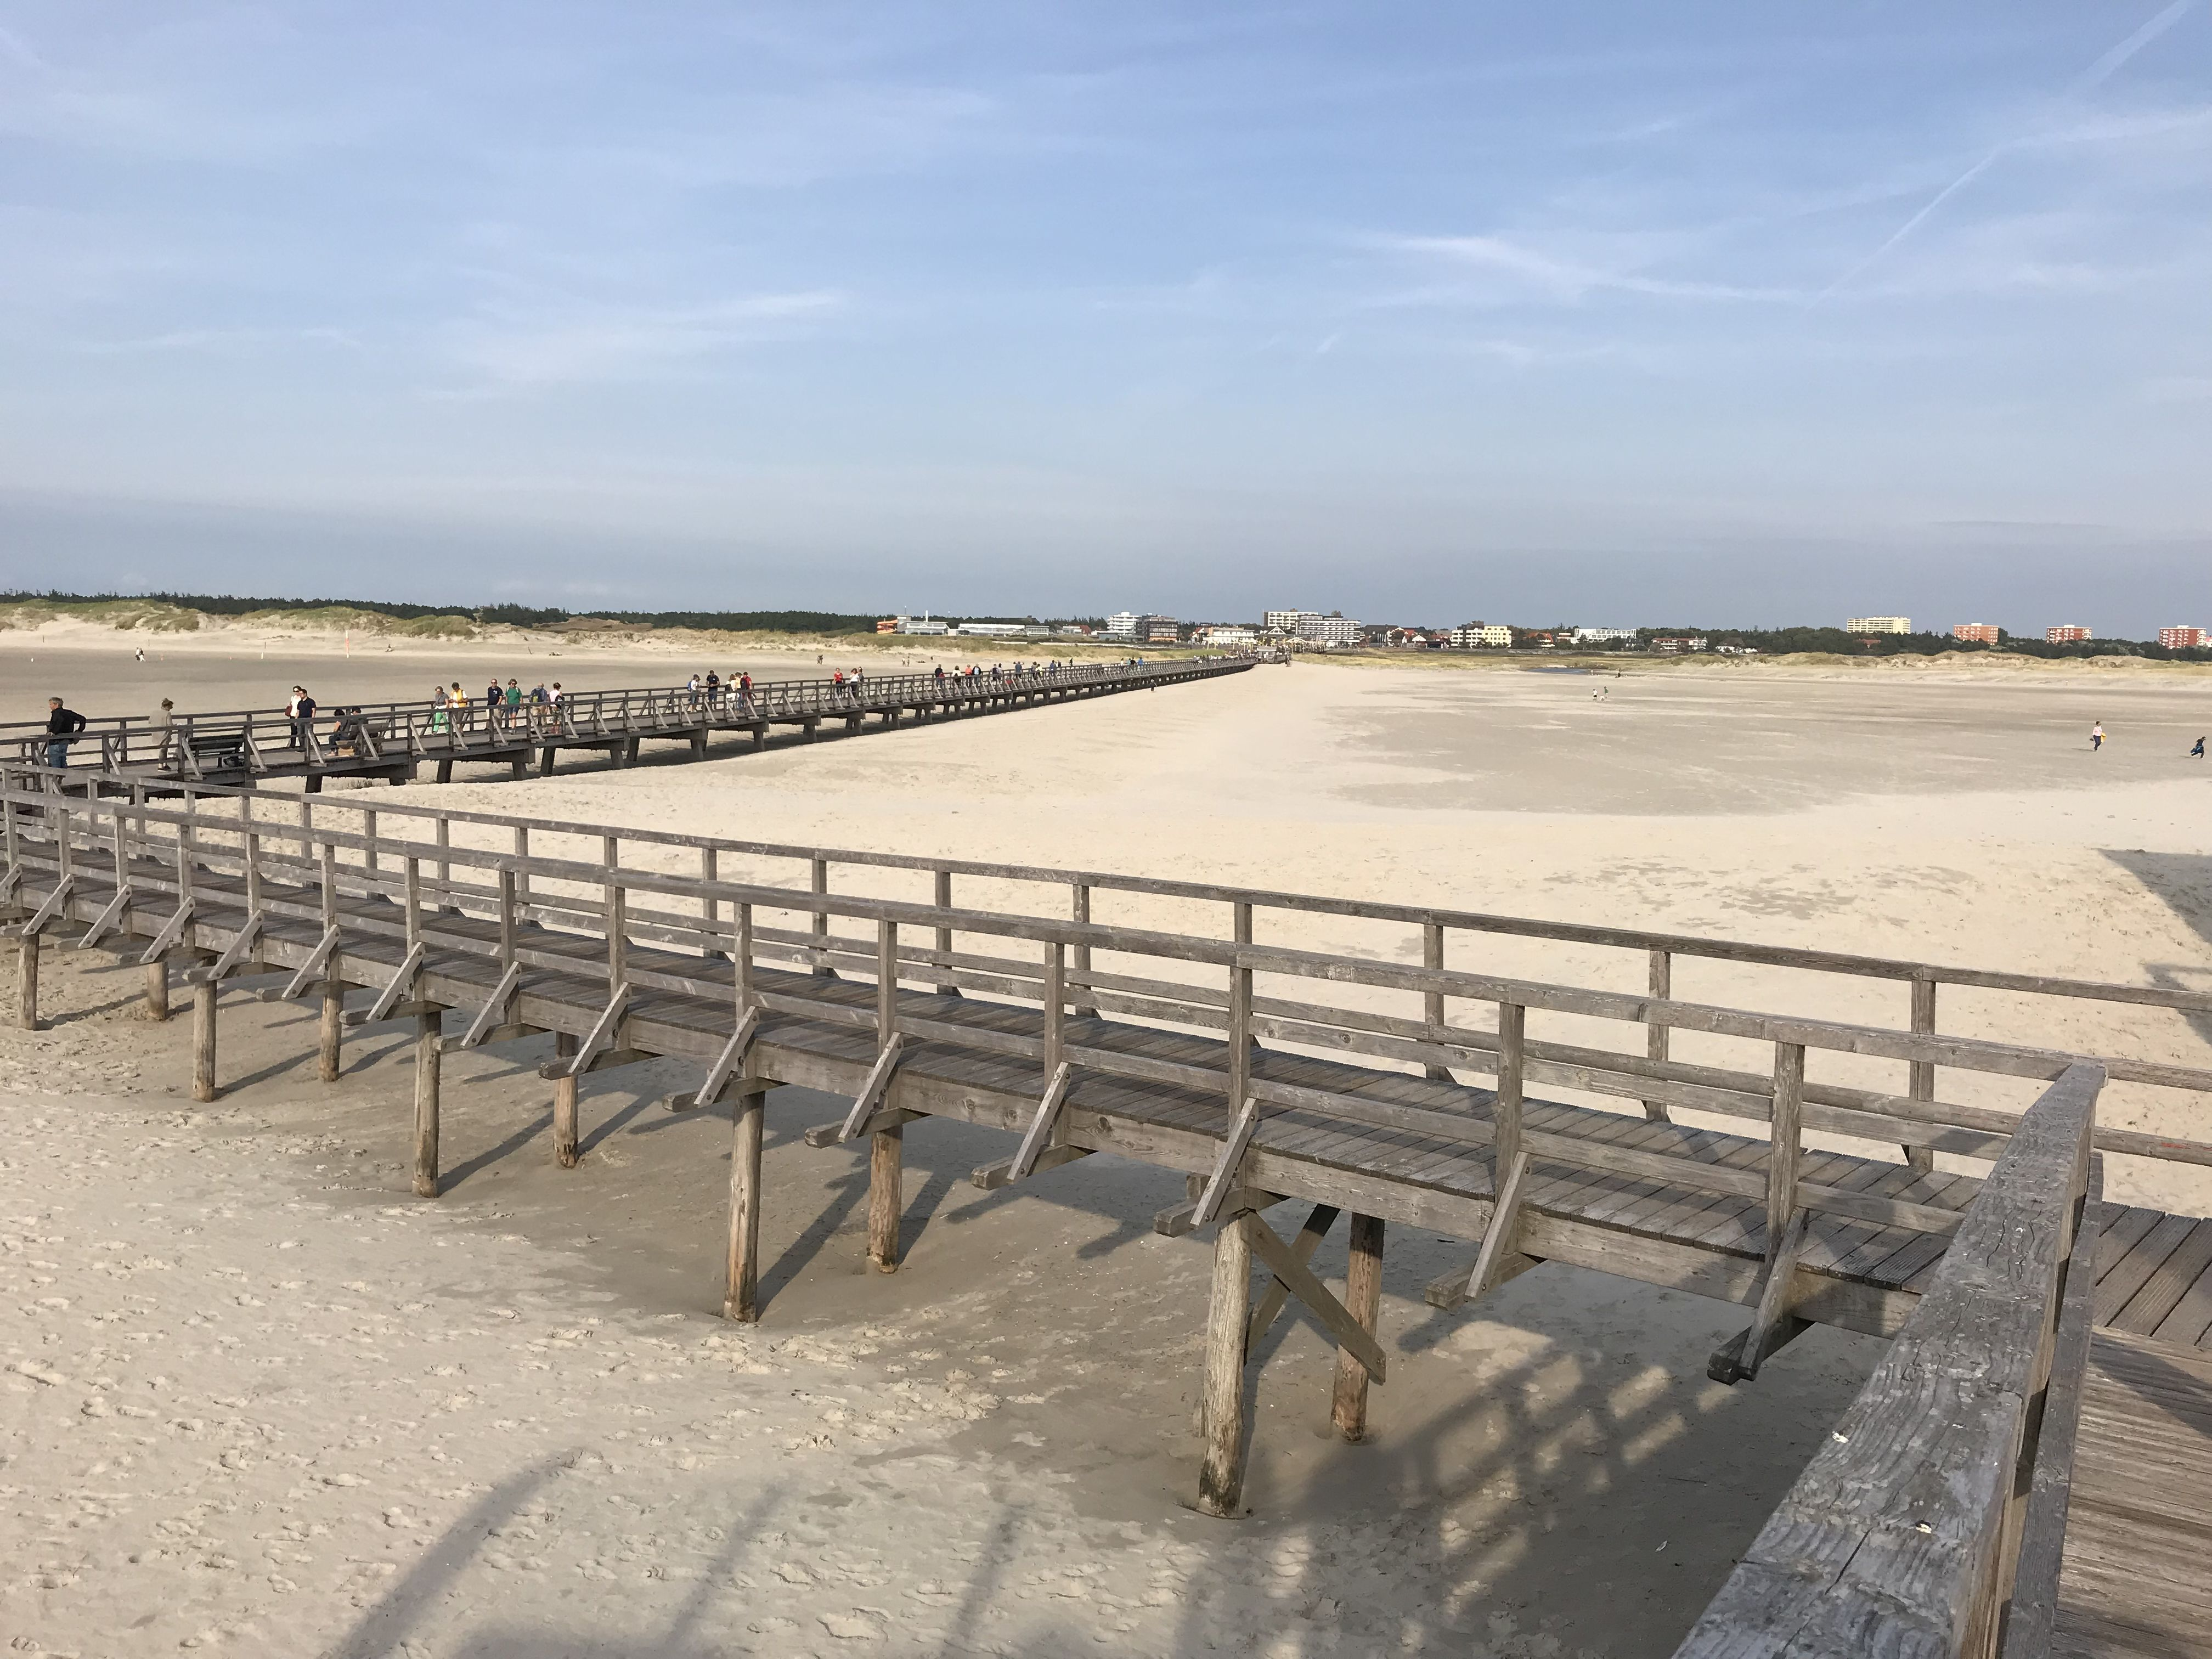 Spo St Peter Ording And It S A Paradise For Dog Owners Water Sports Enthusiasts And All Those Who Like Wide Long Sandy Beaches And Chilling Sandy Beaches